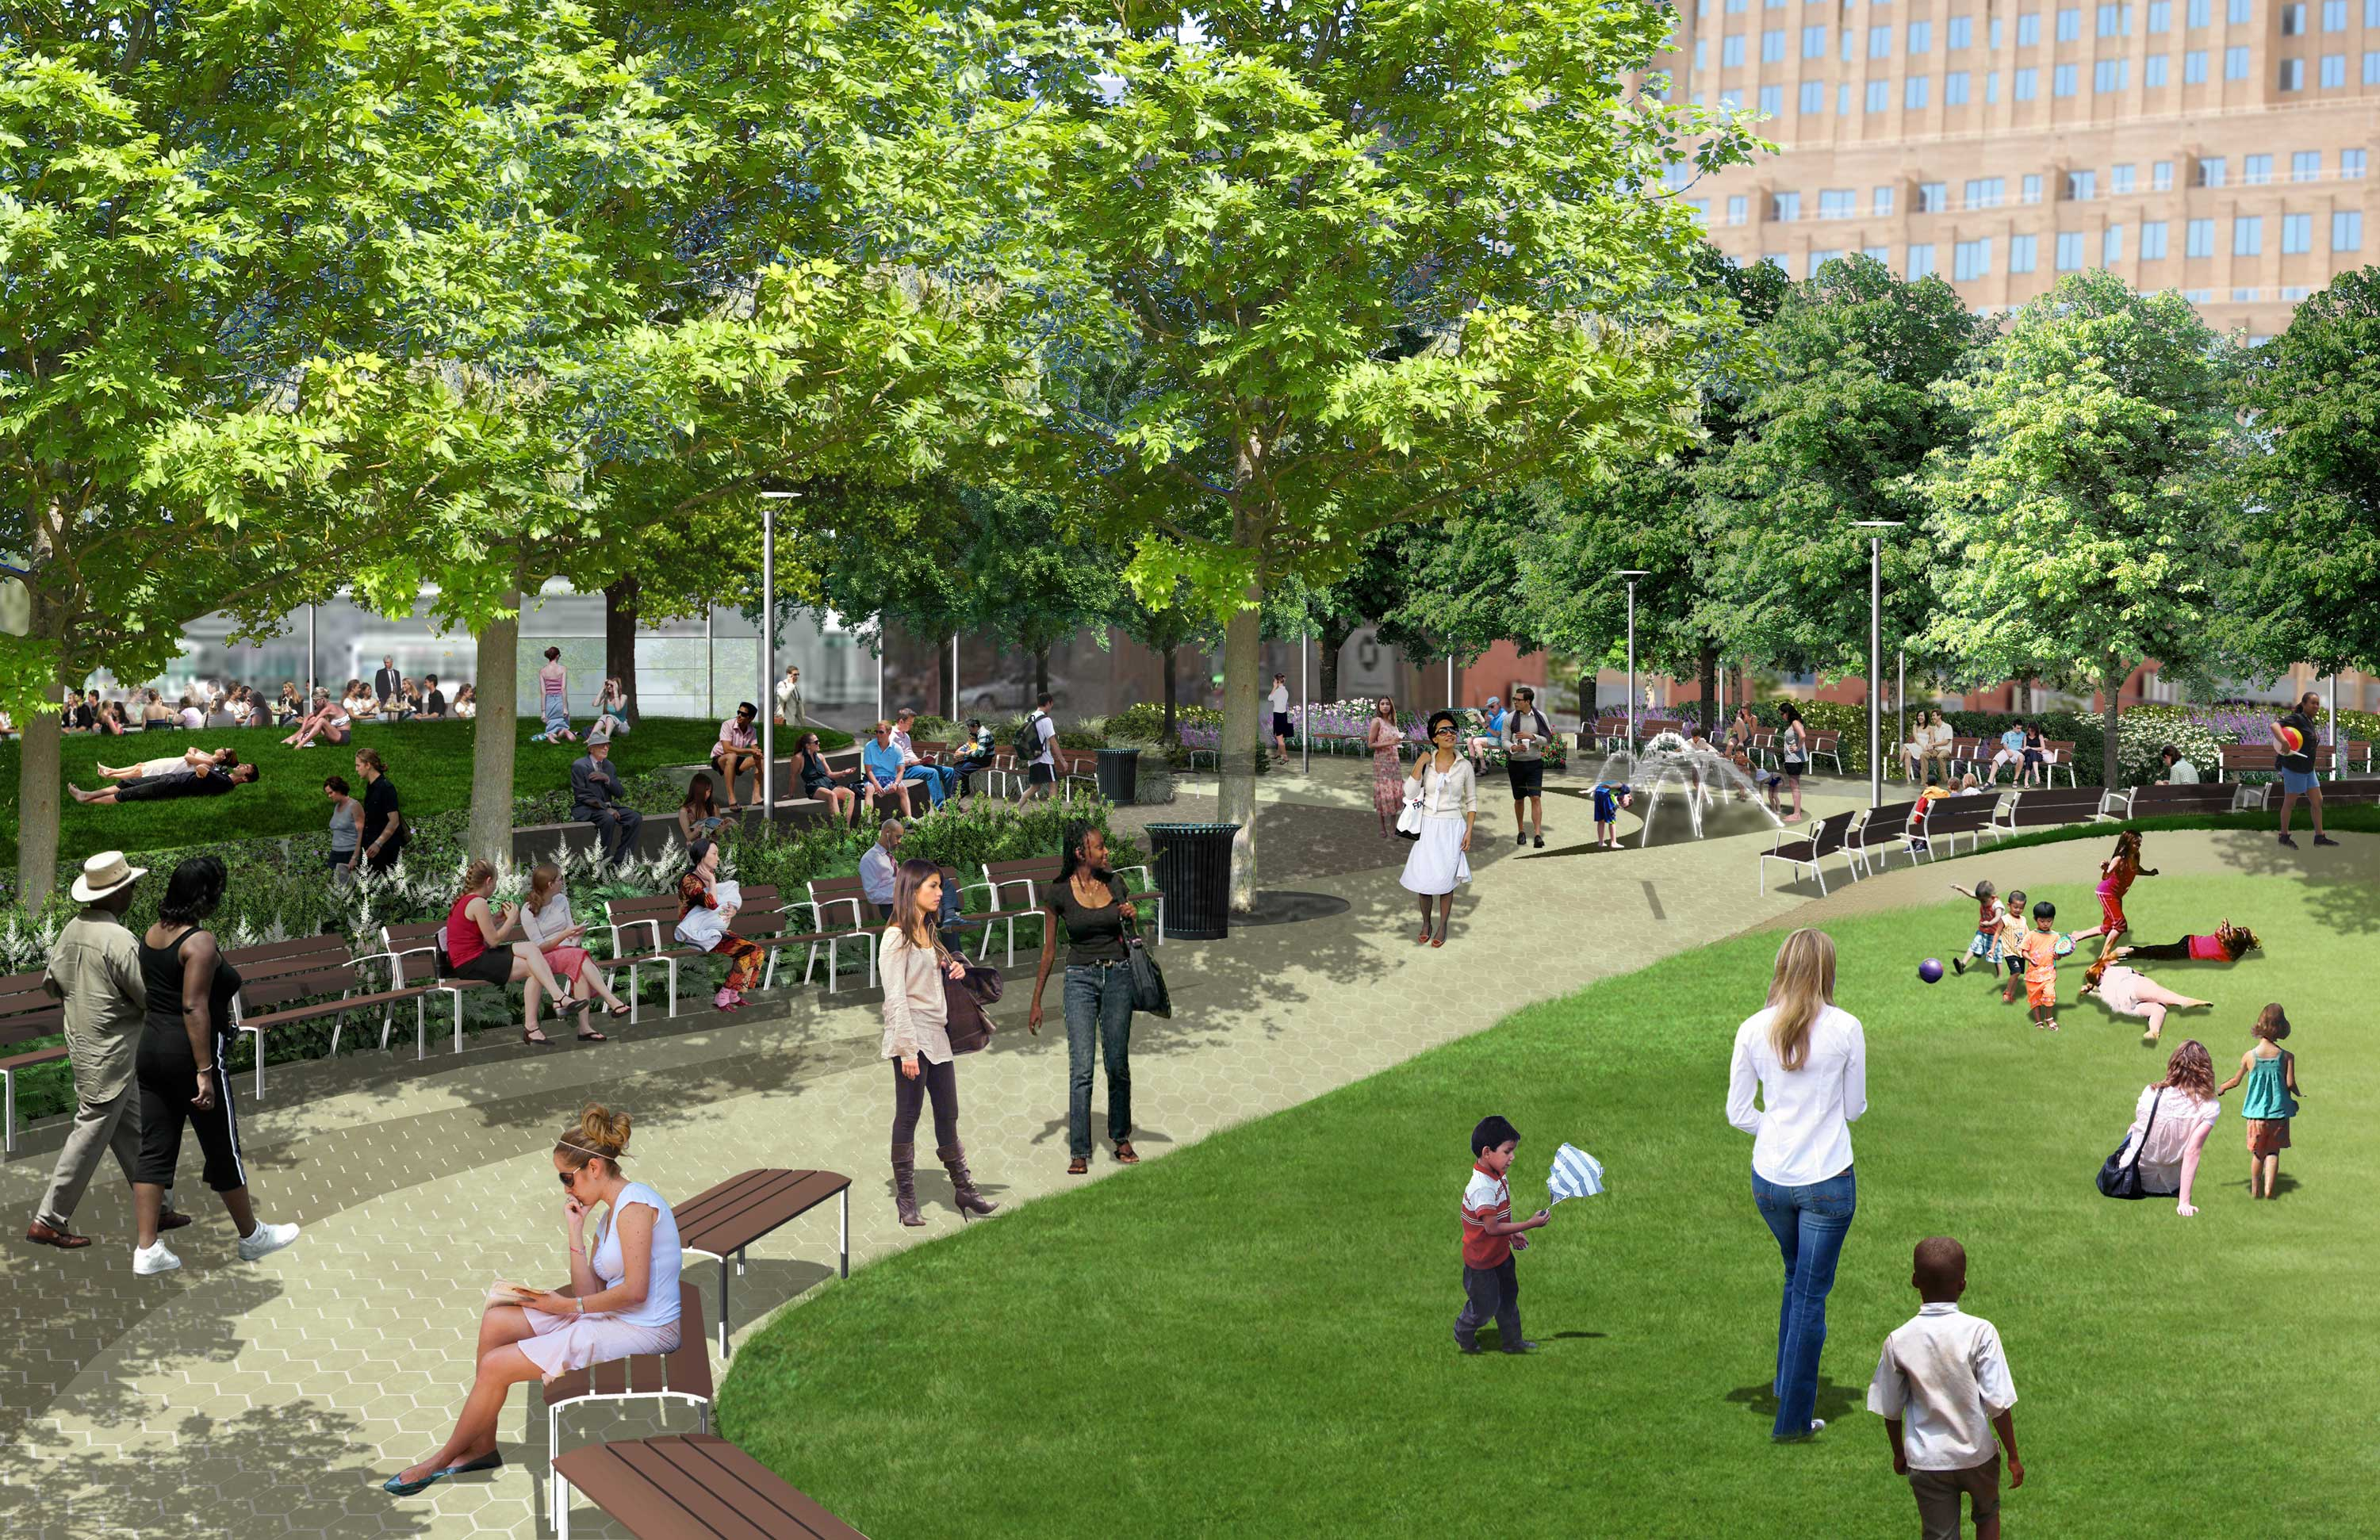 A rendering of Downtown Brooklyn's future green space, Willoughby Square. image via EDC